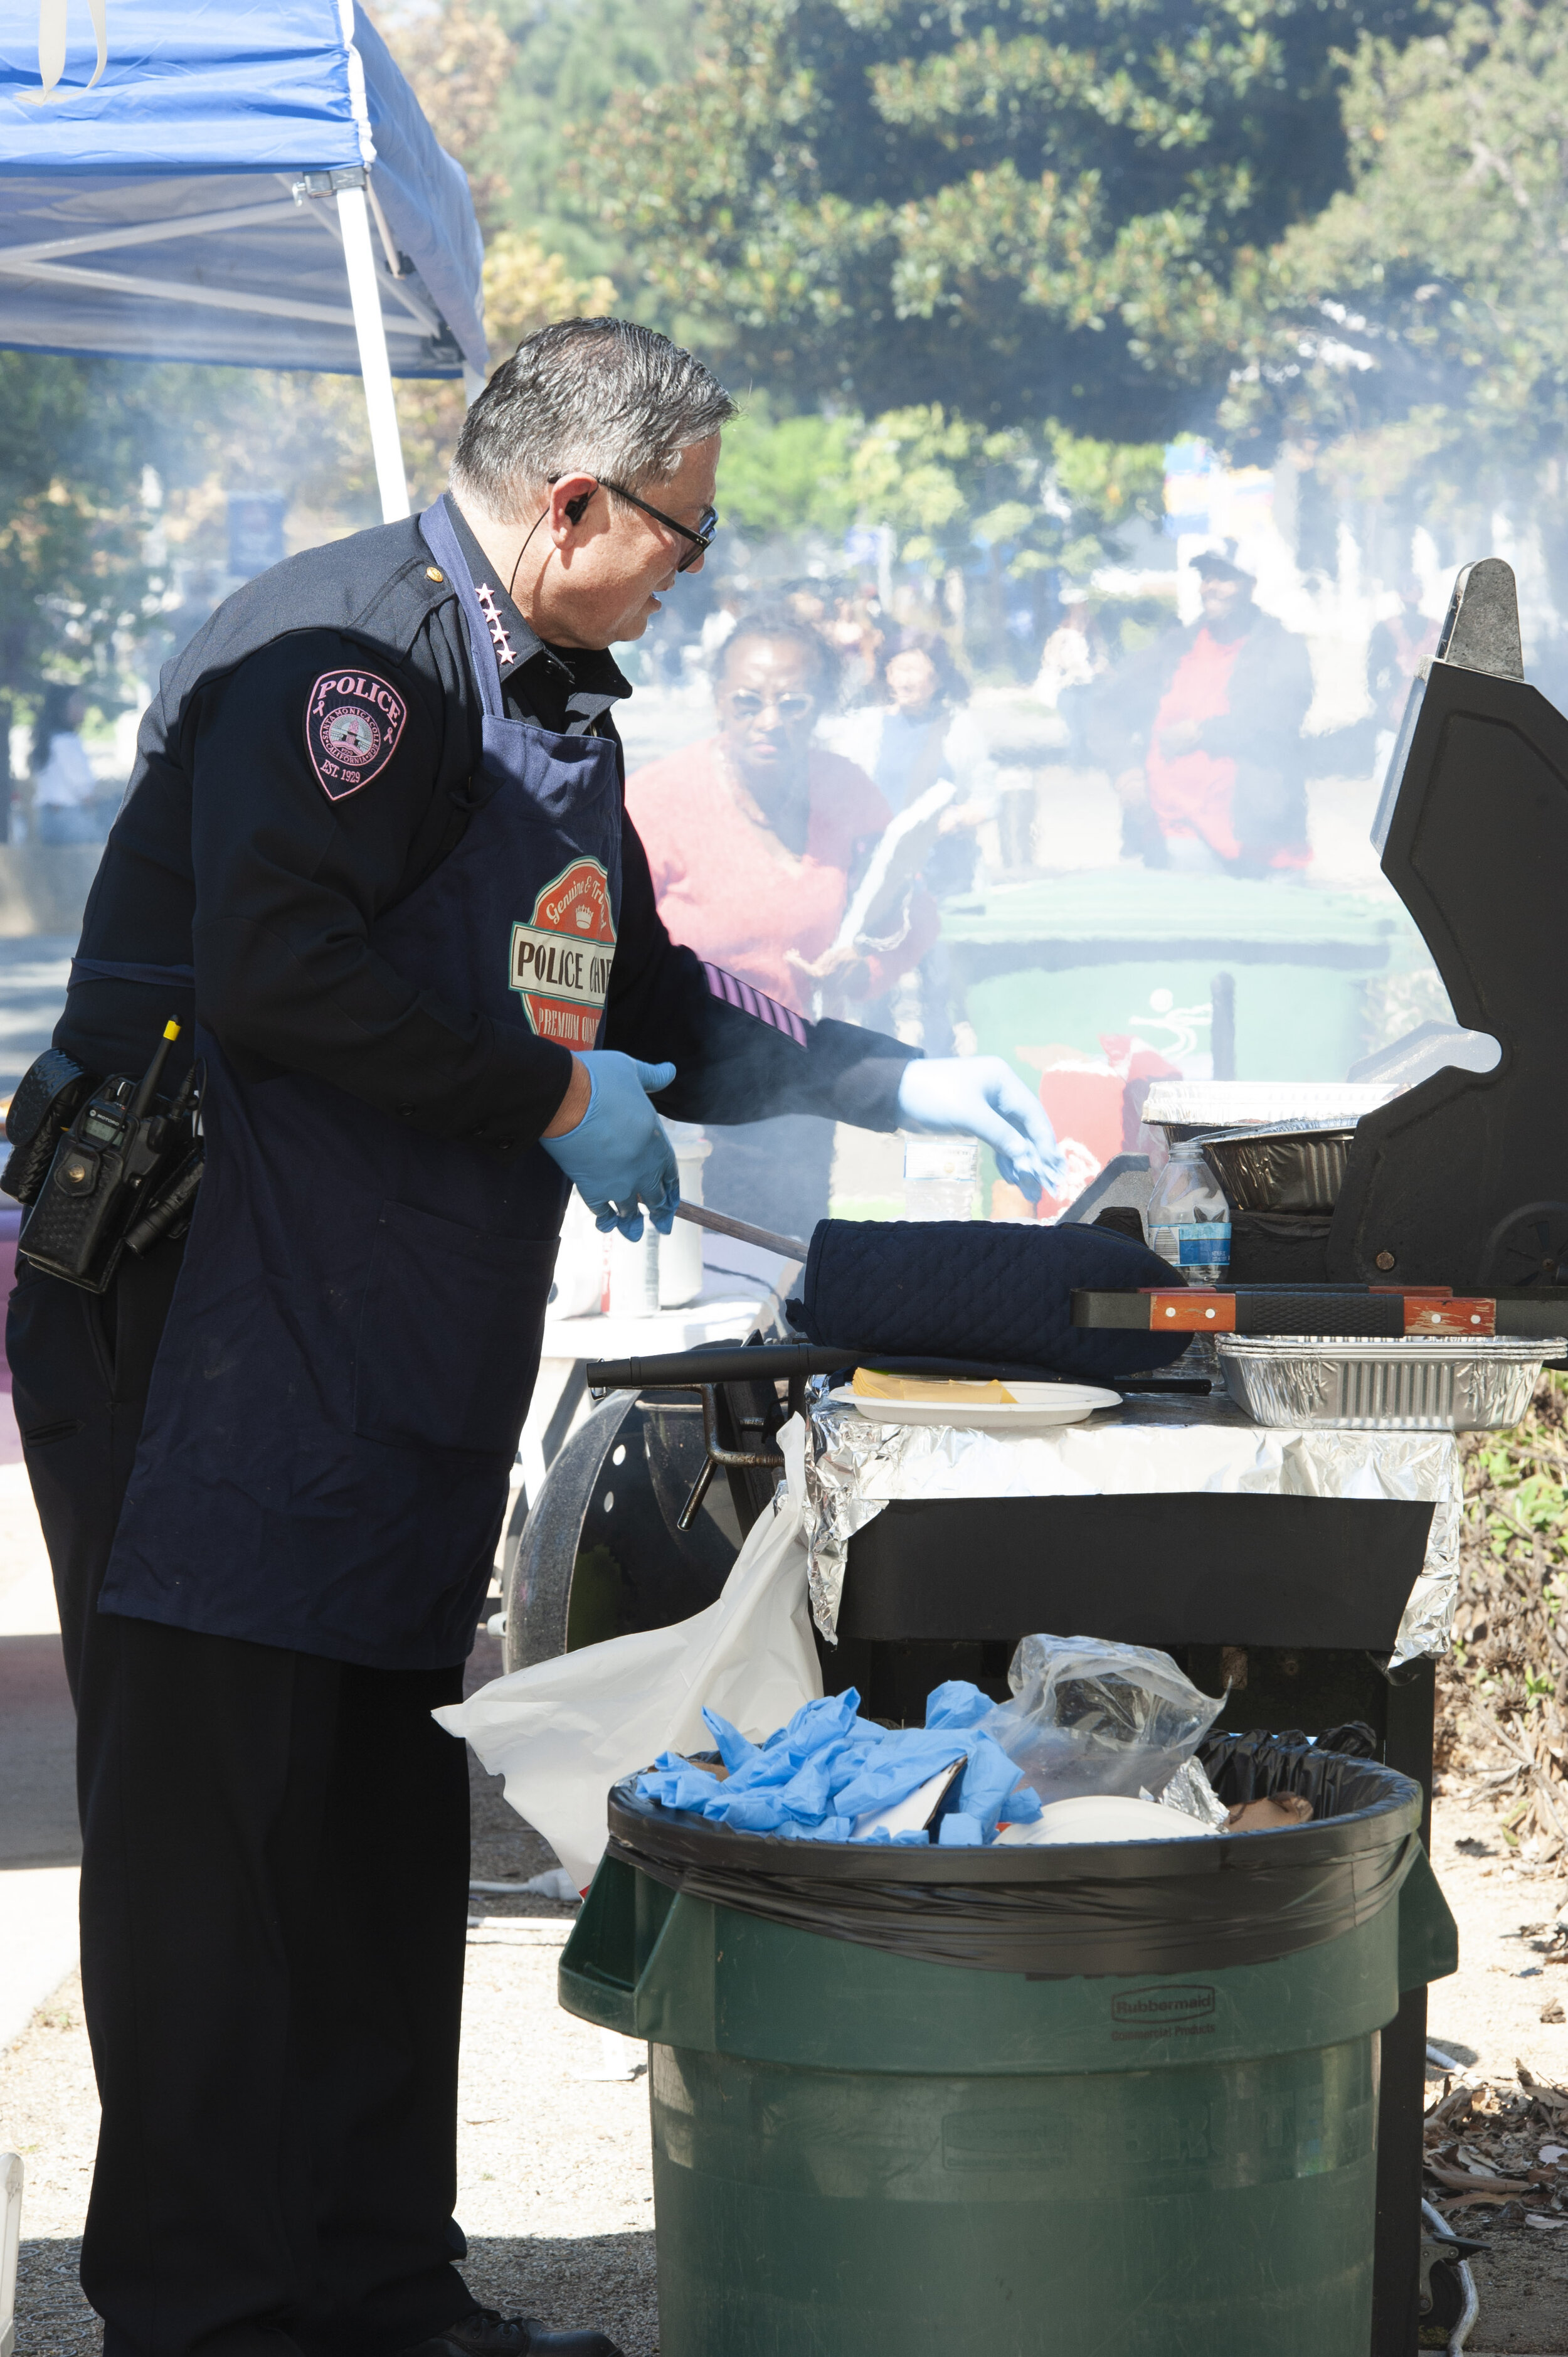 SMC Chief of Police, Johnnie Adams, mans the barbecue on Tuesday, October 8th, 2019, at their headquarters across from Santa Monica College, in Santa Monica, California. All proceeds go to City Of Hope Breast Cancer Research.  (Rachel O'Brien/The Corsair)